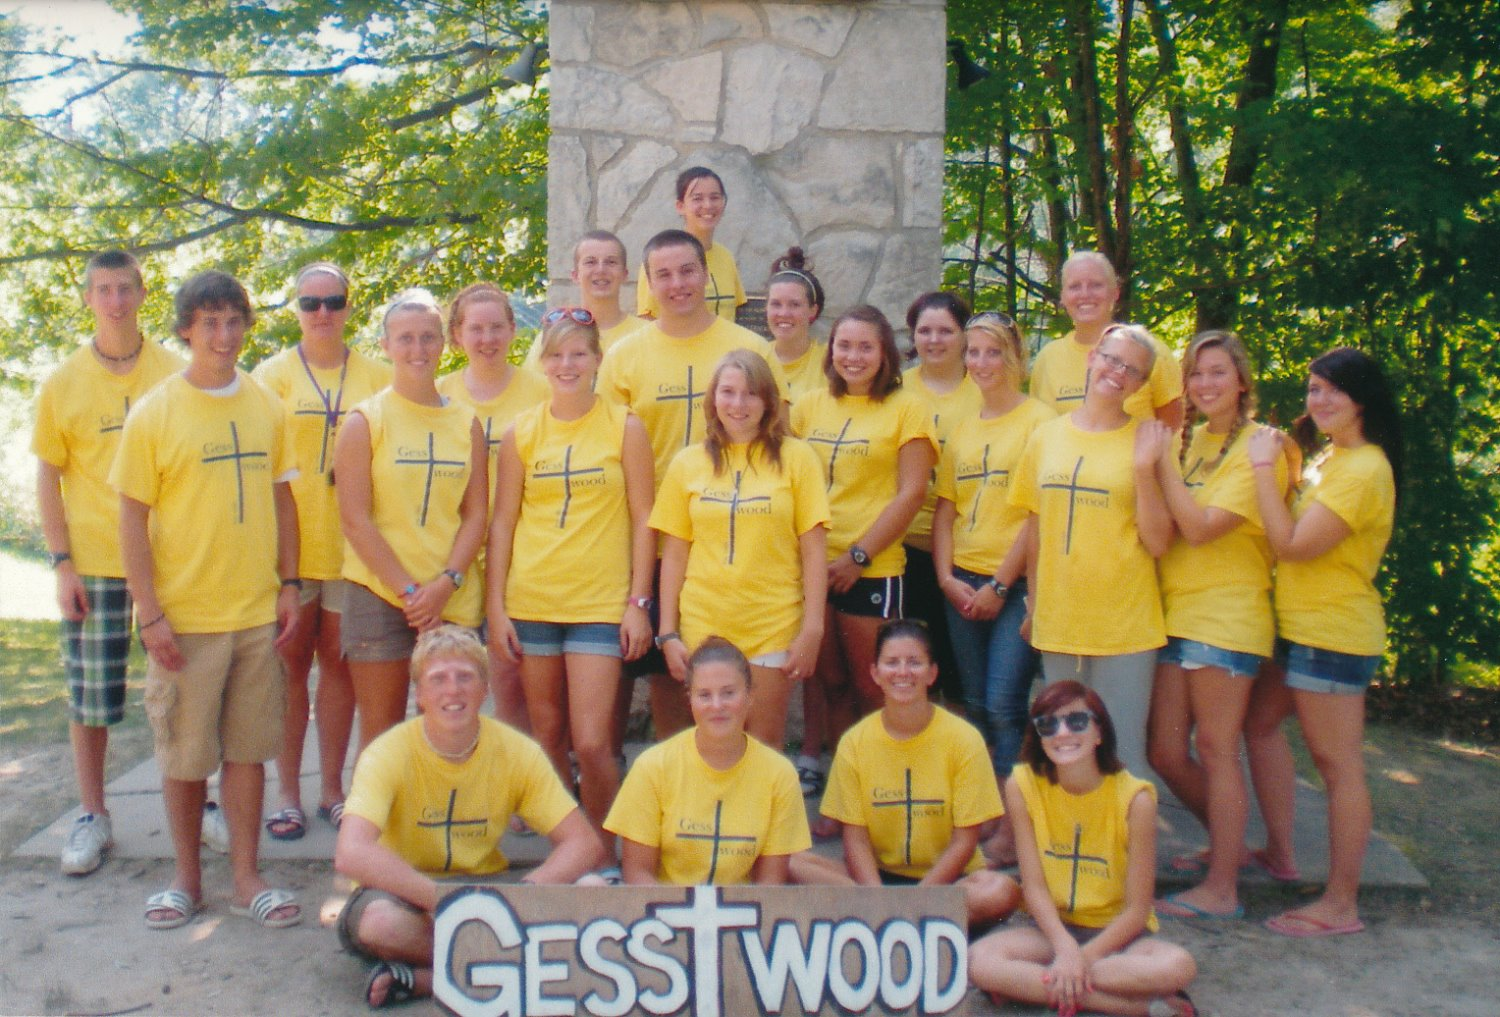 Gesstwood Camp staff